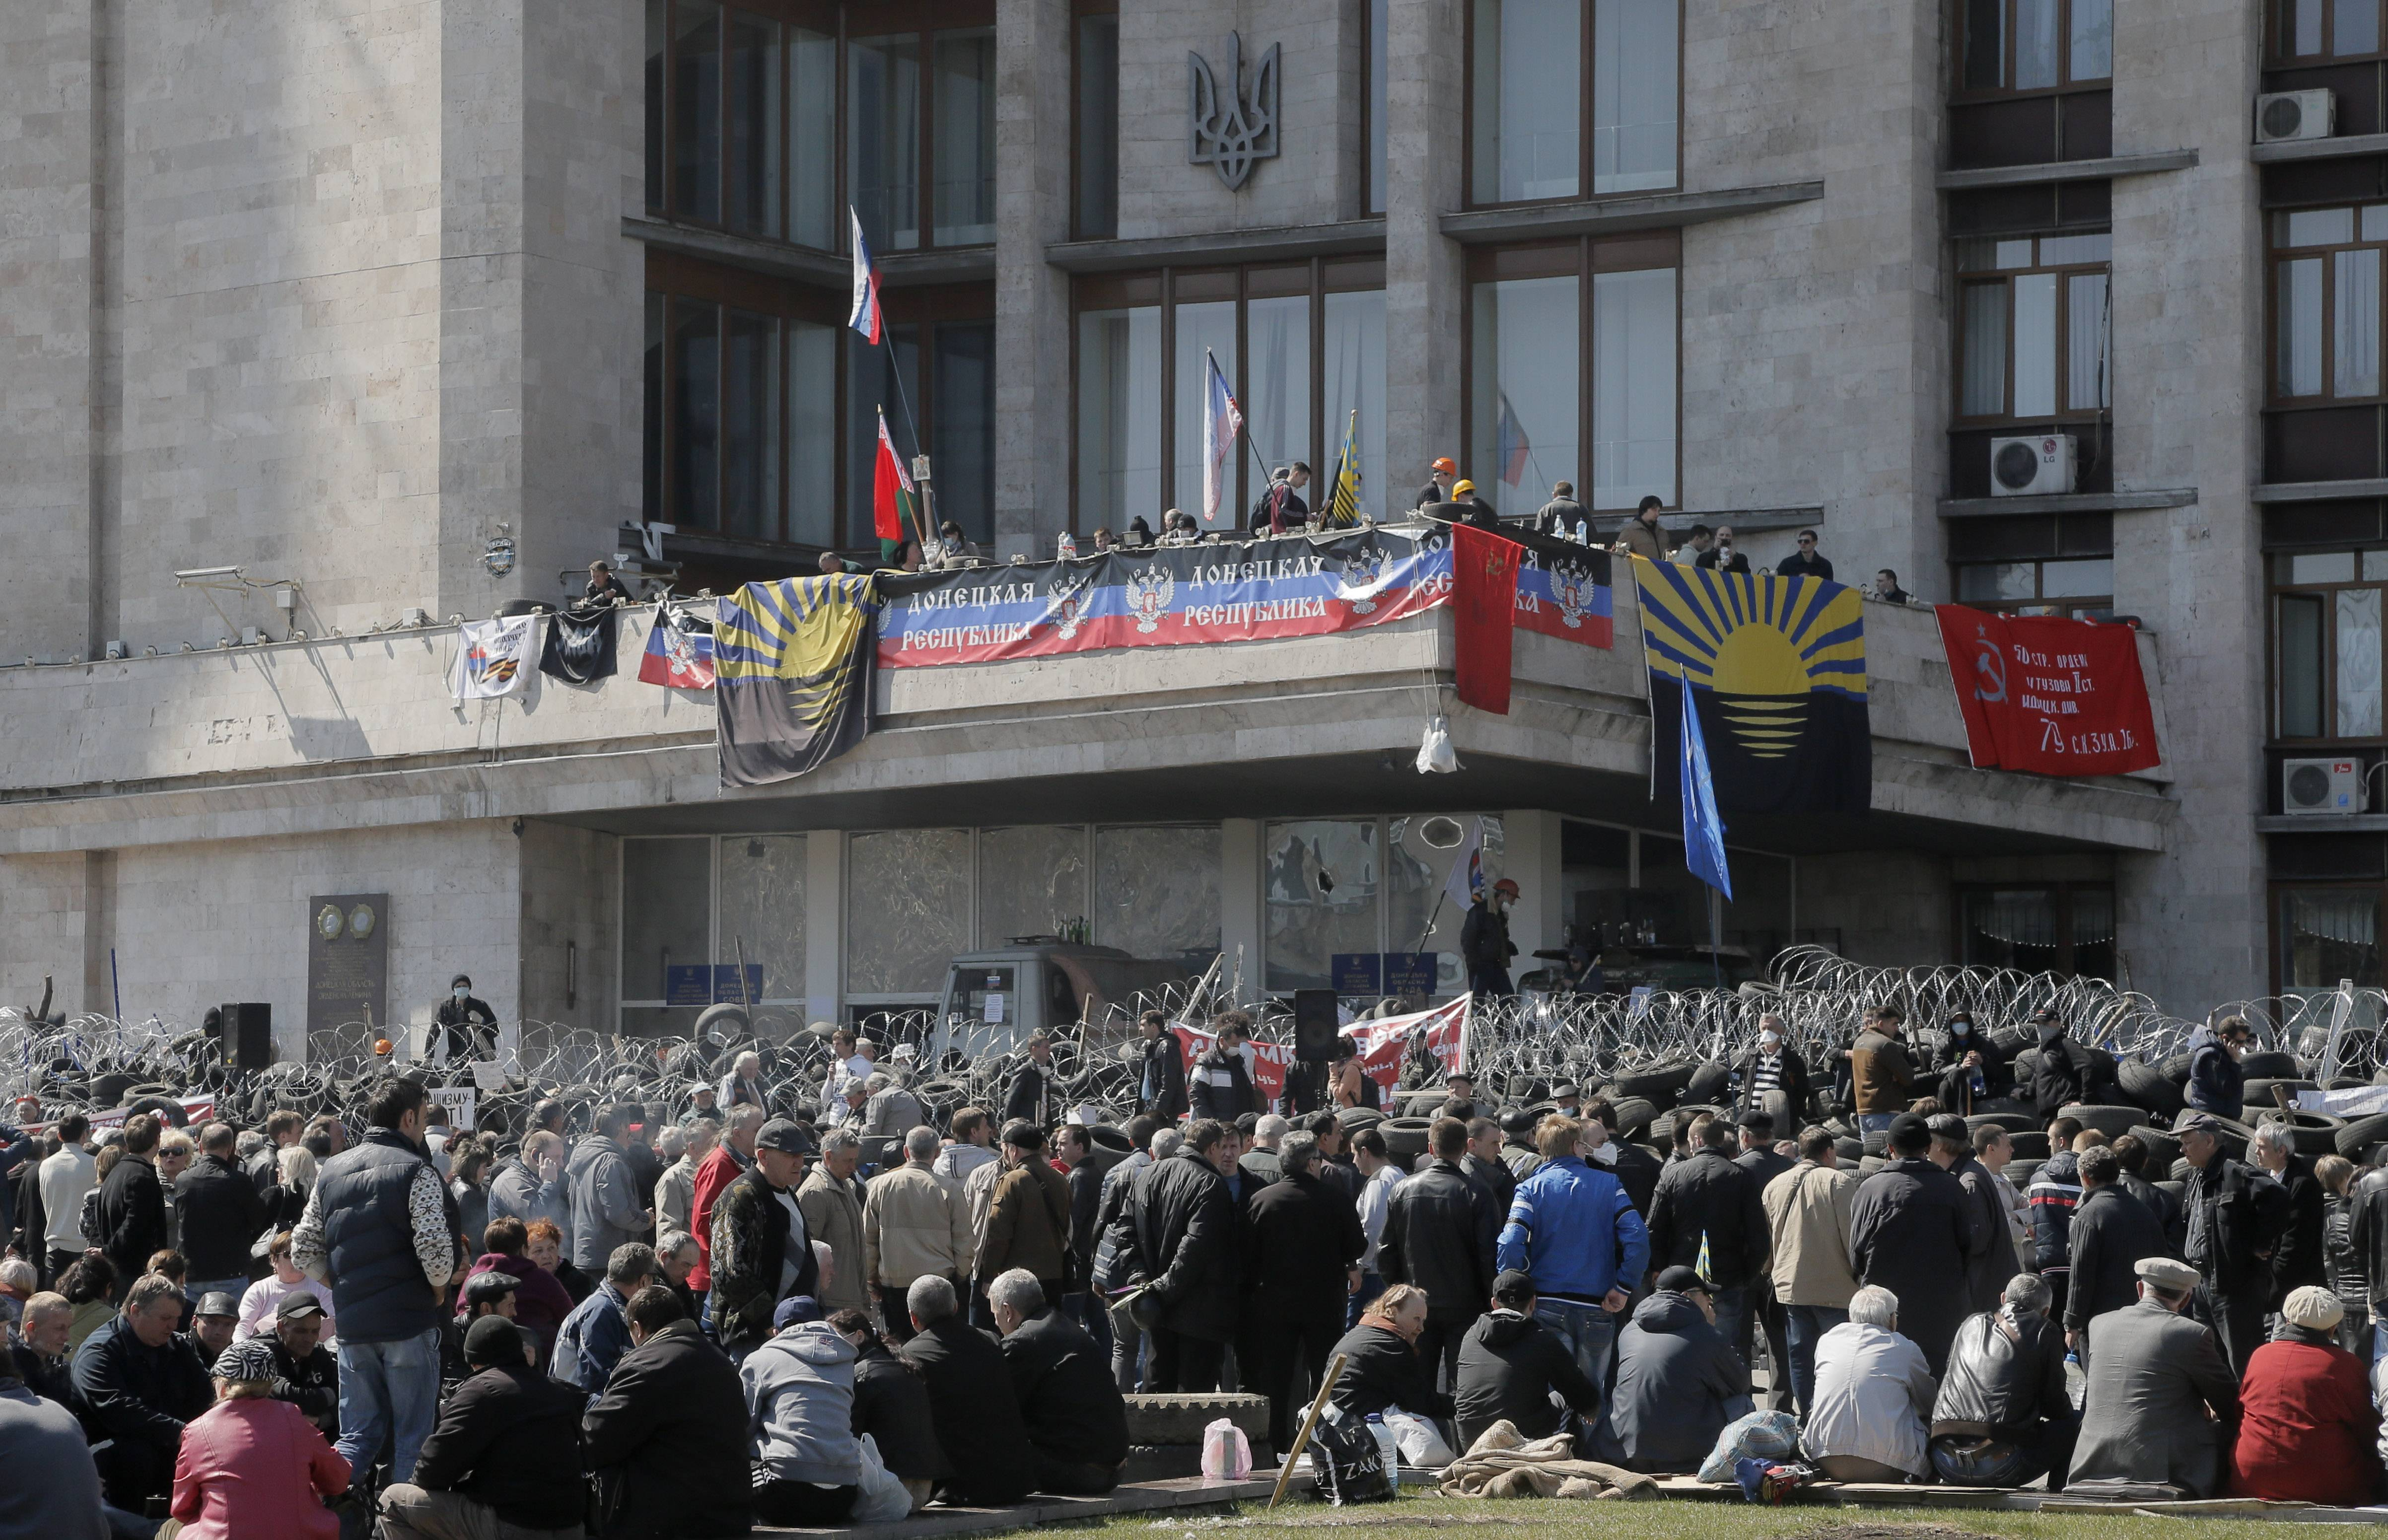 Pro-Russian activists stand at a barricade at the regional administration building in Donetsk, Ukraine, Tuesday, April 8, 2014.  In the city protesters dug in for their third day at the 11-story regional administration headquarters they captured on Sunday and began to declare their own parallel government. Ukrainian authorities on Tuesday reasserted control over an administration building in the country's second-largest city of Kharkiv, 250 Km ( 155 miles) north of Donetsk, which had been seized by pro-Russian protesters, and authorities detained some dozens.